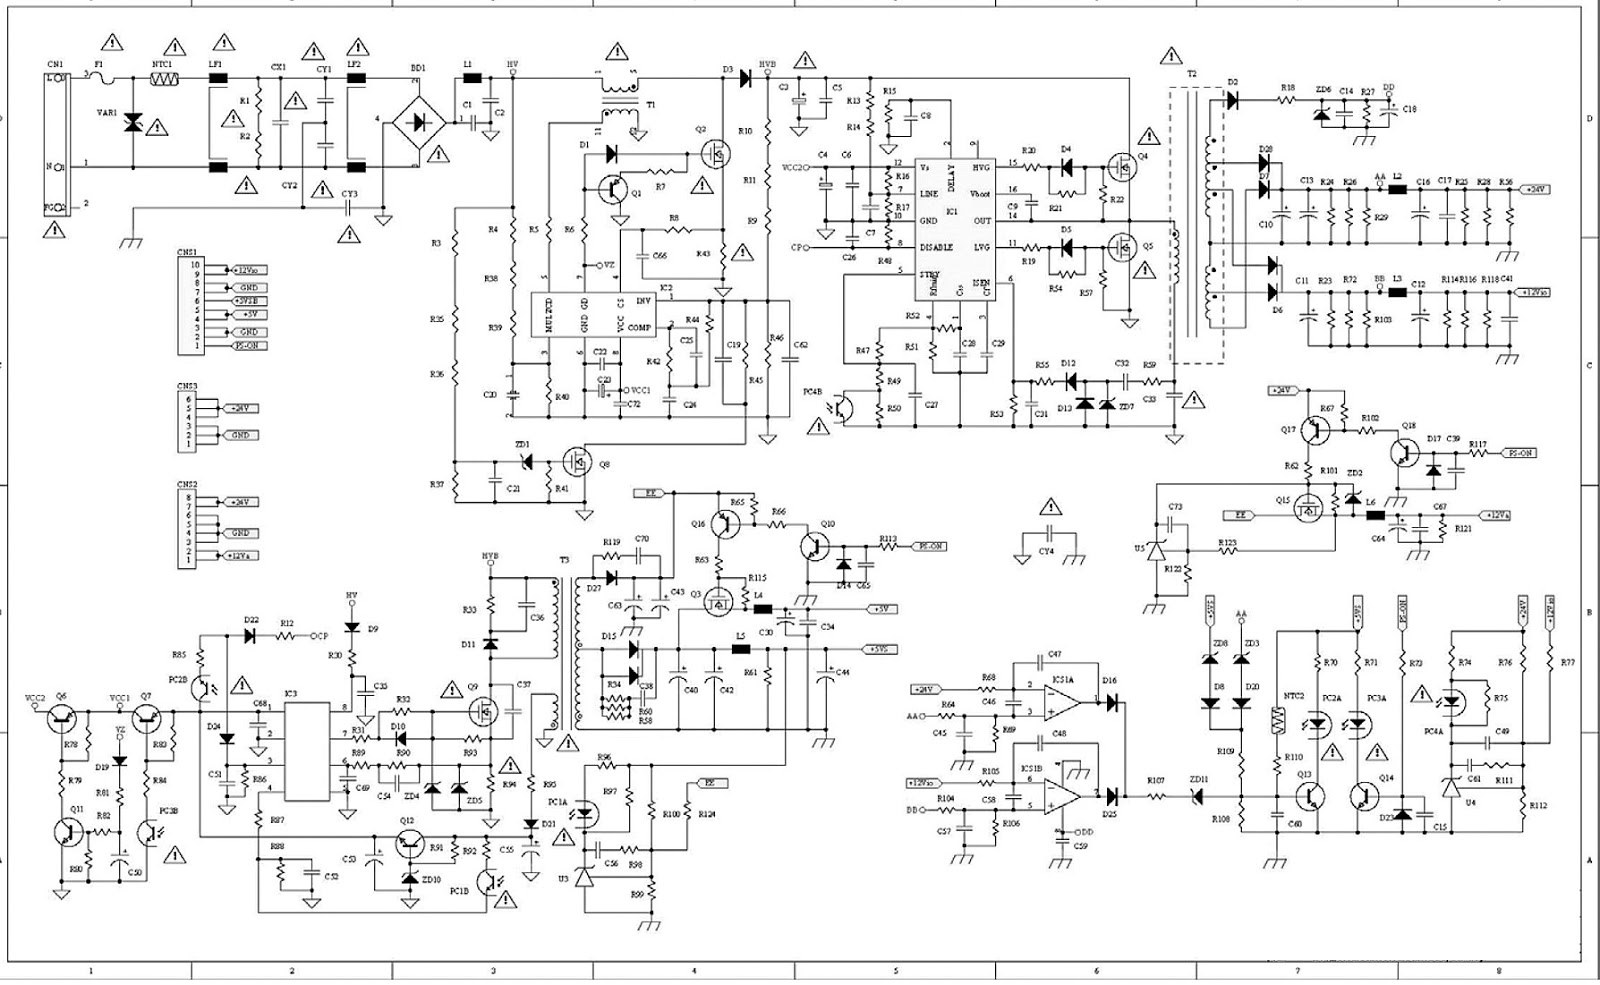 Changhong Ls01 Lcd Tv Smps Schematic Fsp205 5e01 Electro Help Dvd S1700 Power Supply Circuit Diagram And Connector Voltages